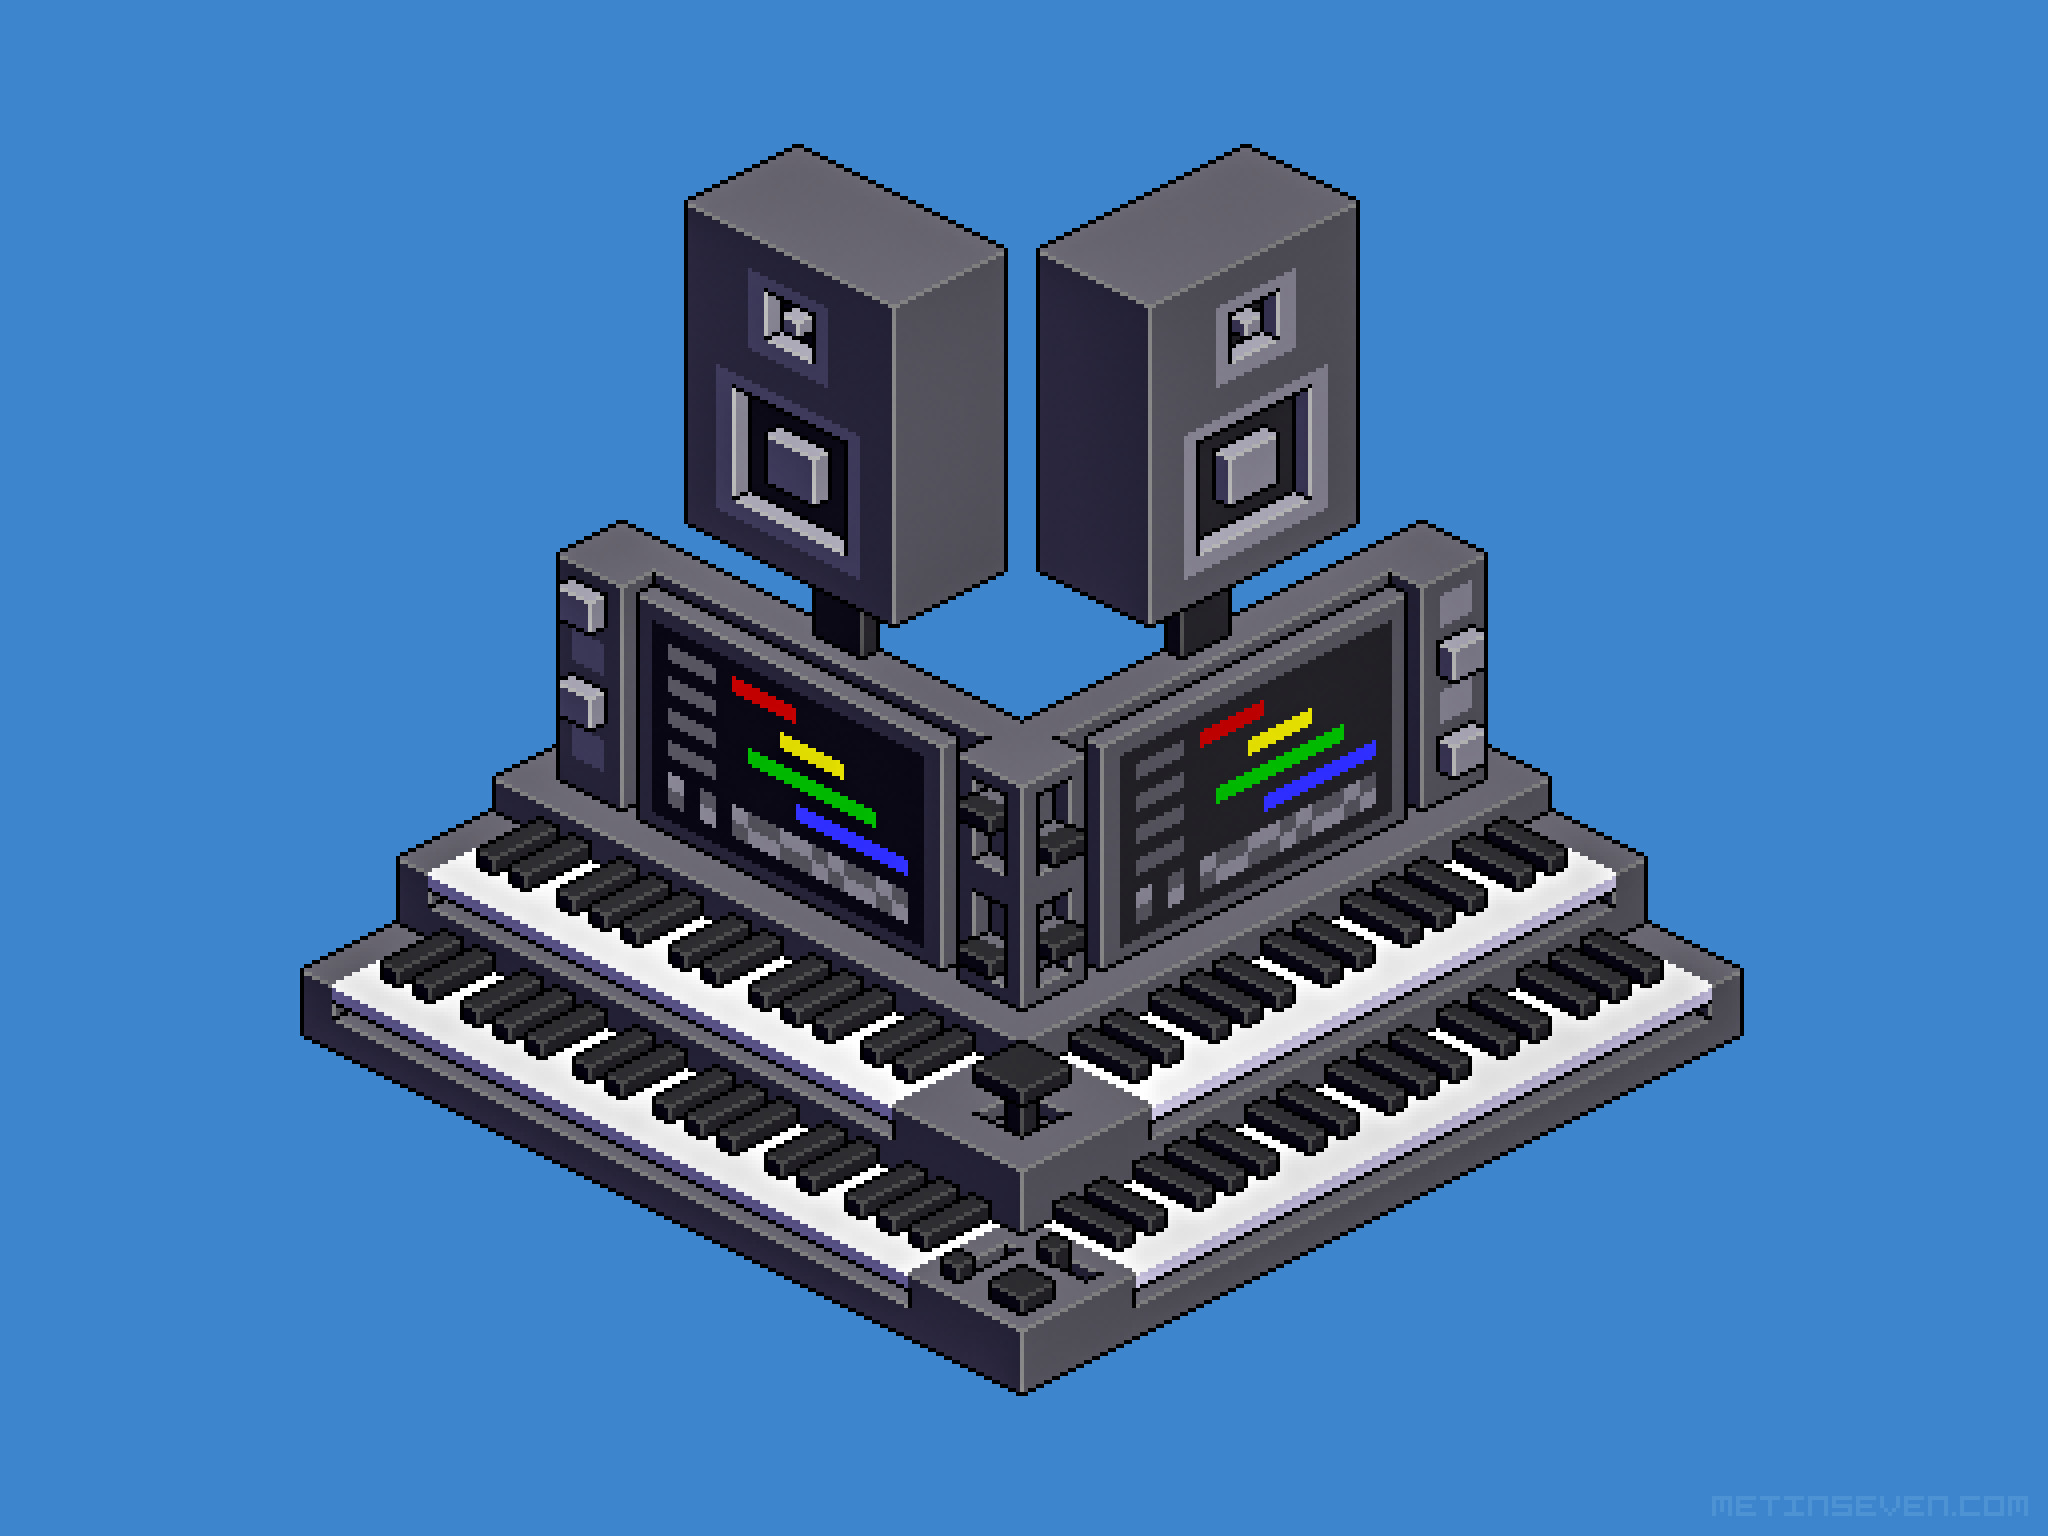 Isometric pixel art of an imaginary electronic music rig